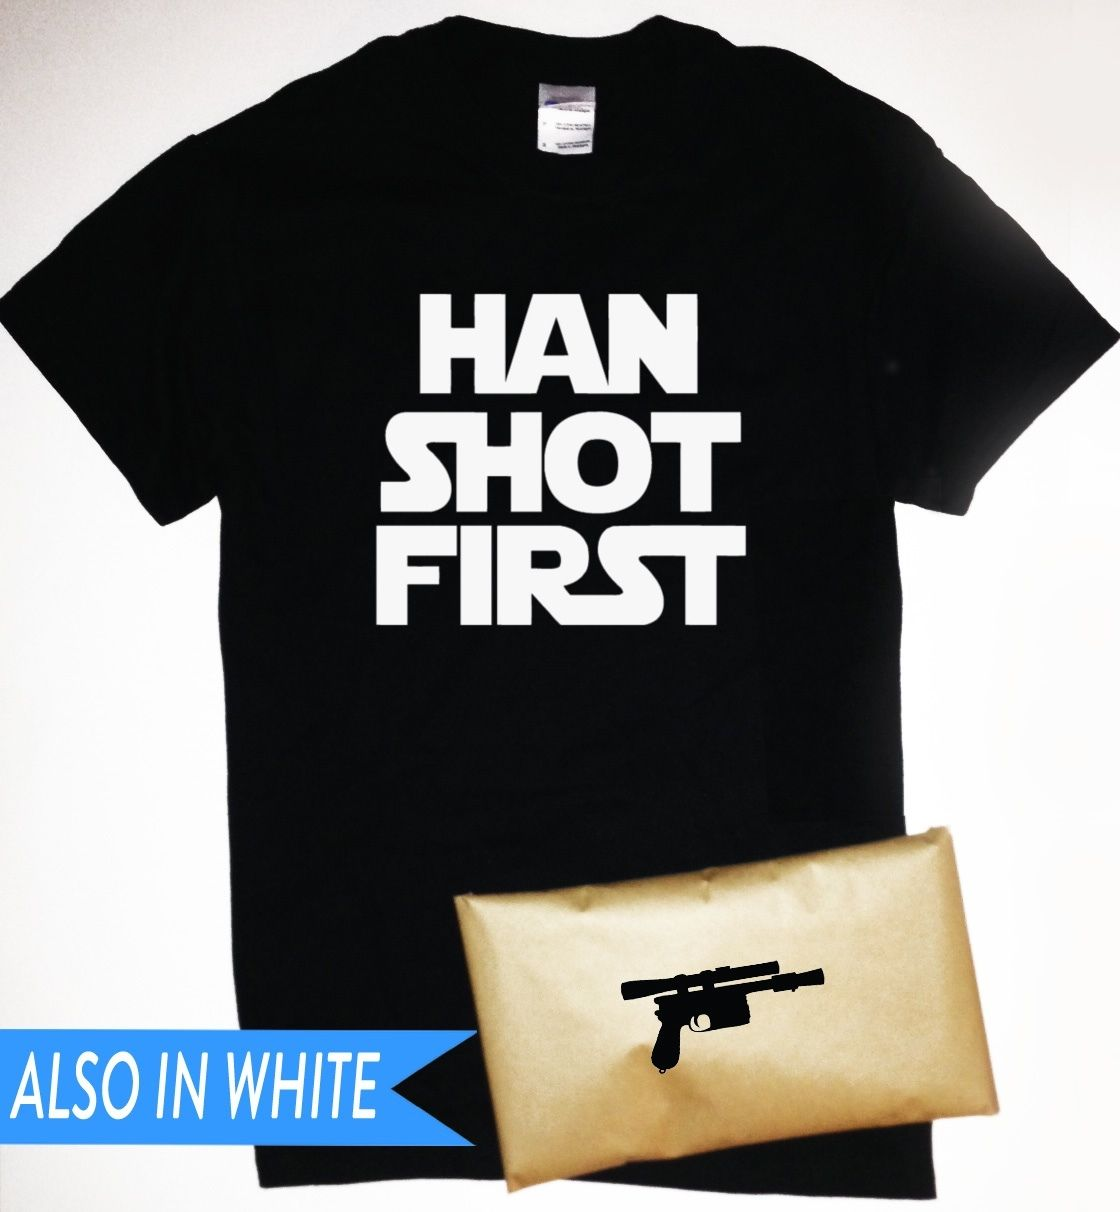 Han Shot First T-Shirt with Blaster Pistol Packaging Star Wars Solo Free shipping Harajuku Tops Fashion Classic Unique